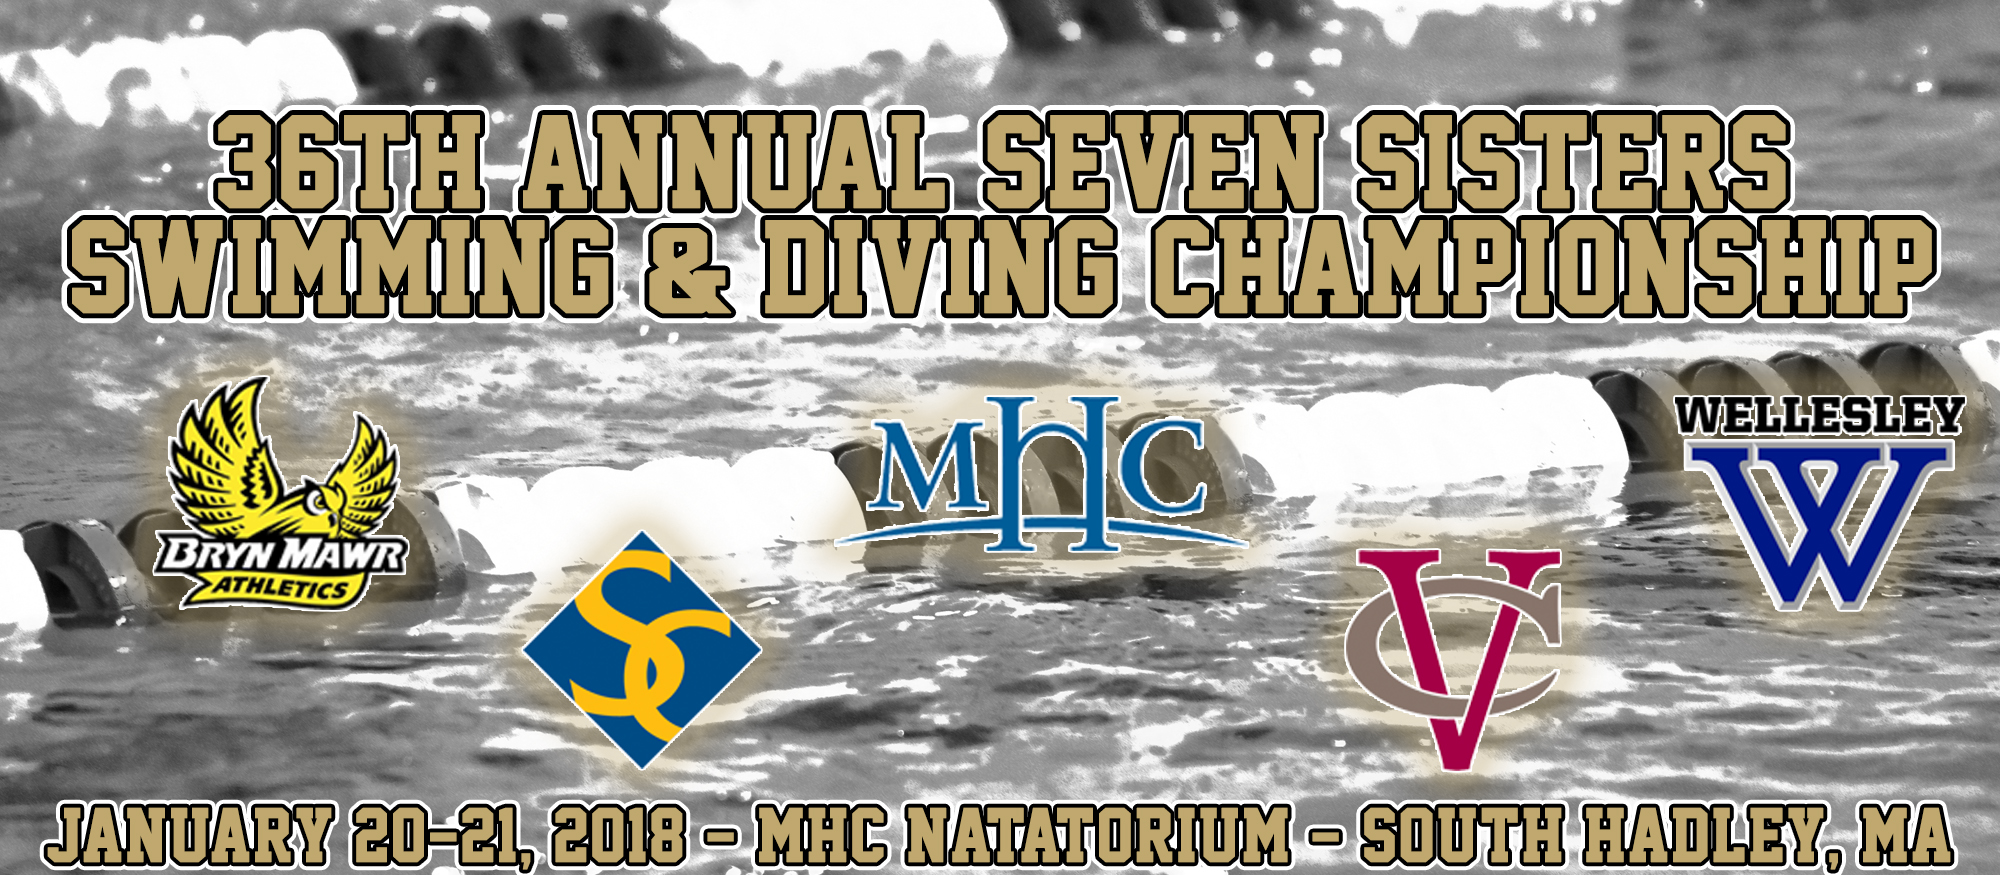 Image featuring the five participating schools in the 2018 Seven Sisters Championship, including Bryn Mawr, Smith, Mount Holyoke, Vassar and Wellesley. Set to run Jan. 20-21, 2018 at MHC.